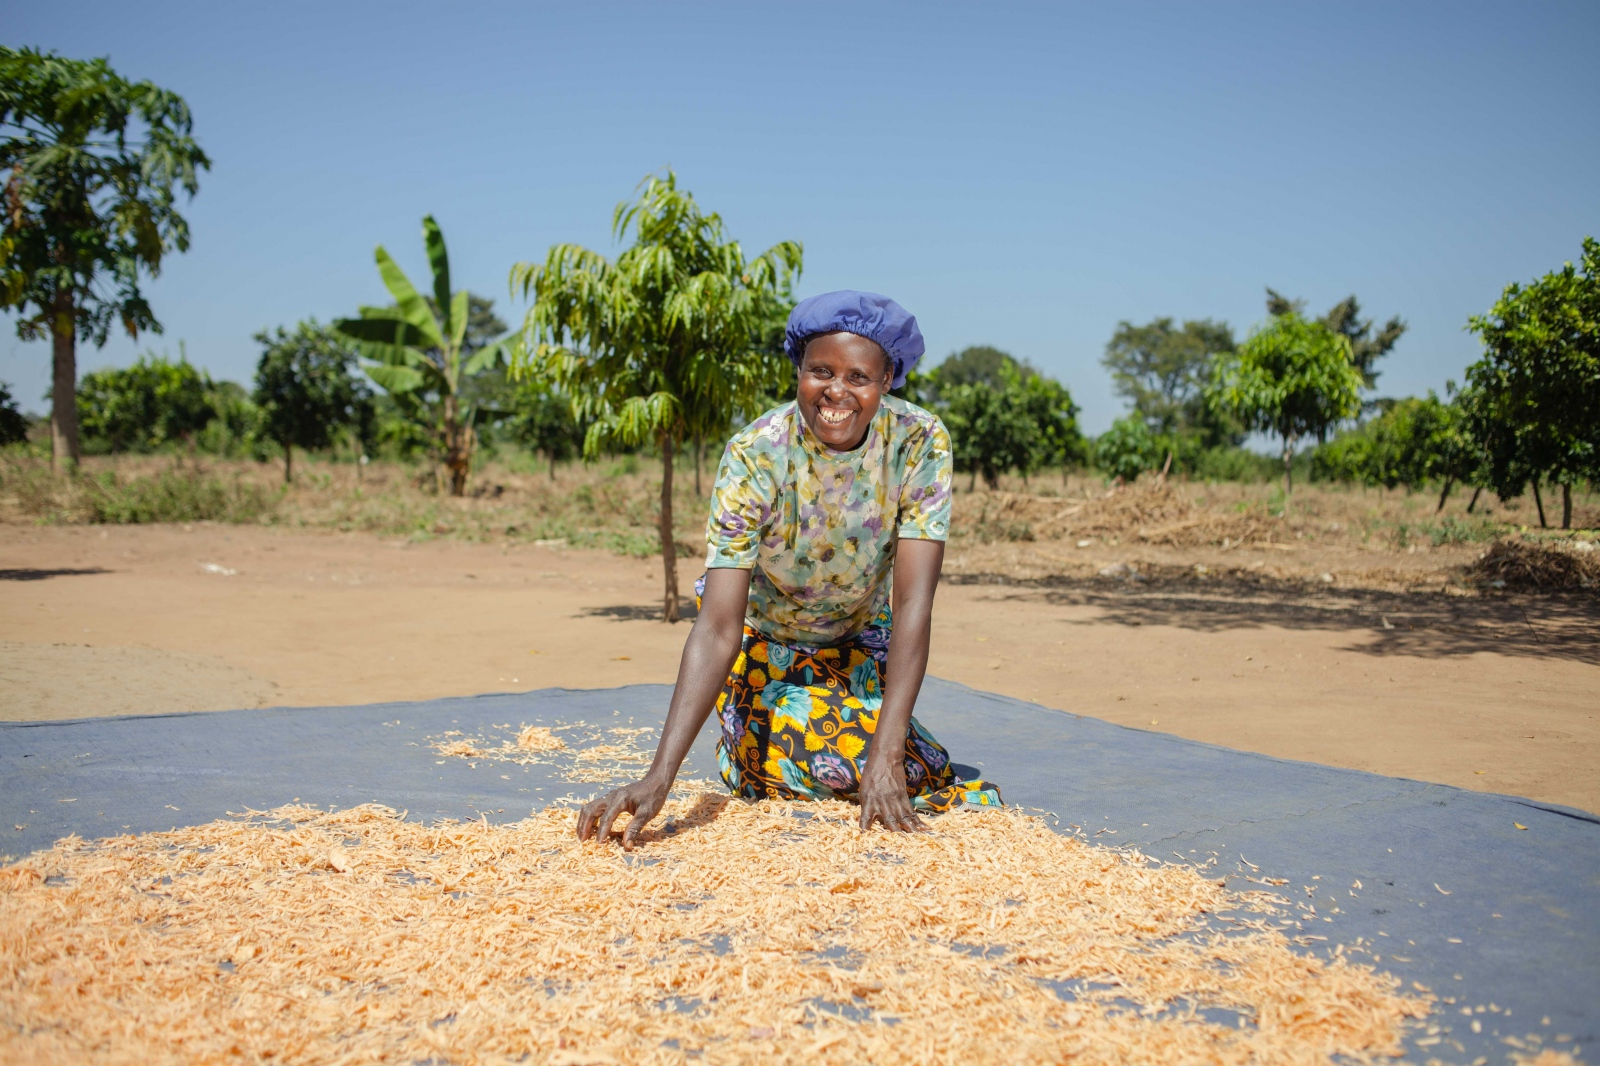 Kokoi sun dries the harvested sweet potatoes from her garden in Soroti, Eastern Uganda. Farm Africa's Orange Sweet Potato Project is helping farmers like her produce, process and sell high-quality orange sweet potatoes and also teaches them how to add value to their potatoes by chipping and drying them, so they can be stored and sold after harvest time when the market isn't flooded.  For Farm Africa